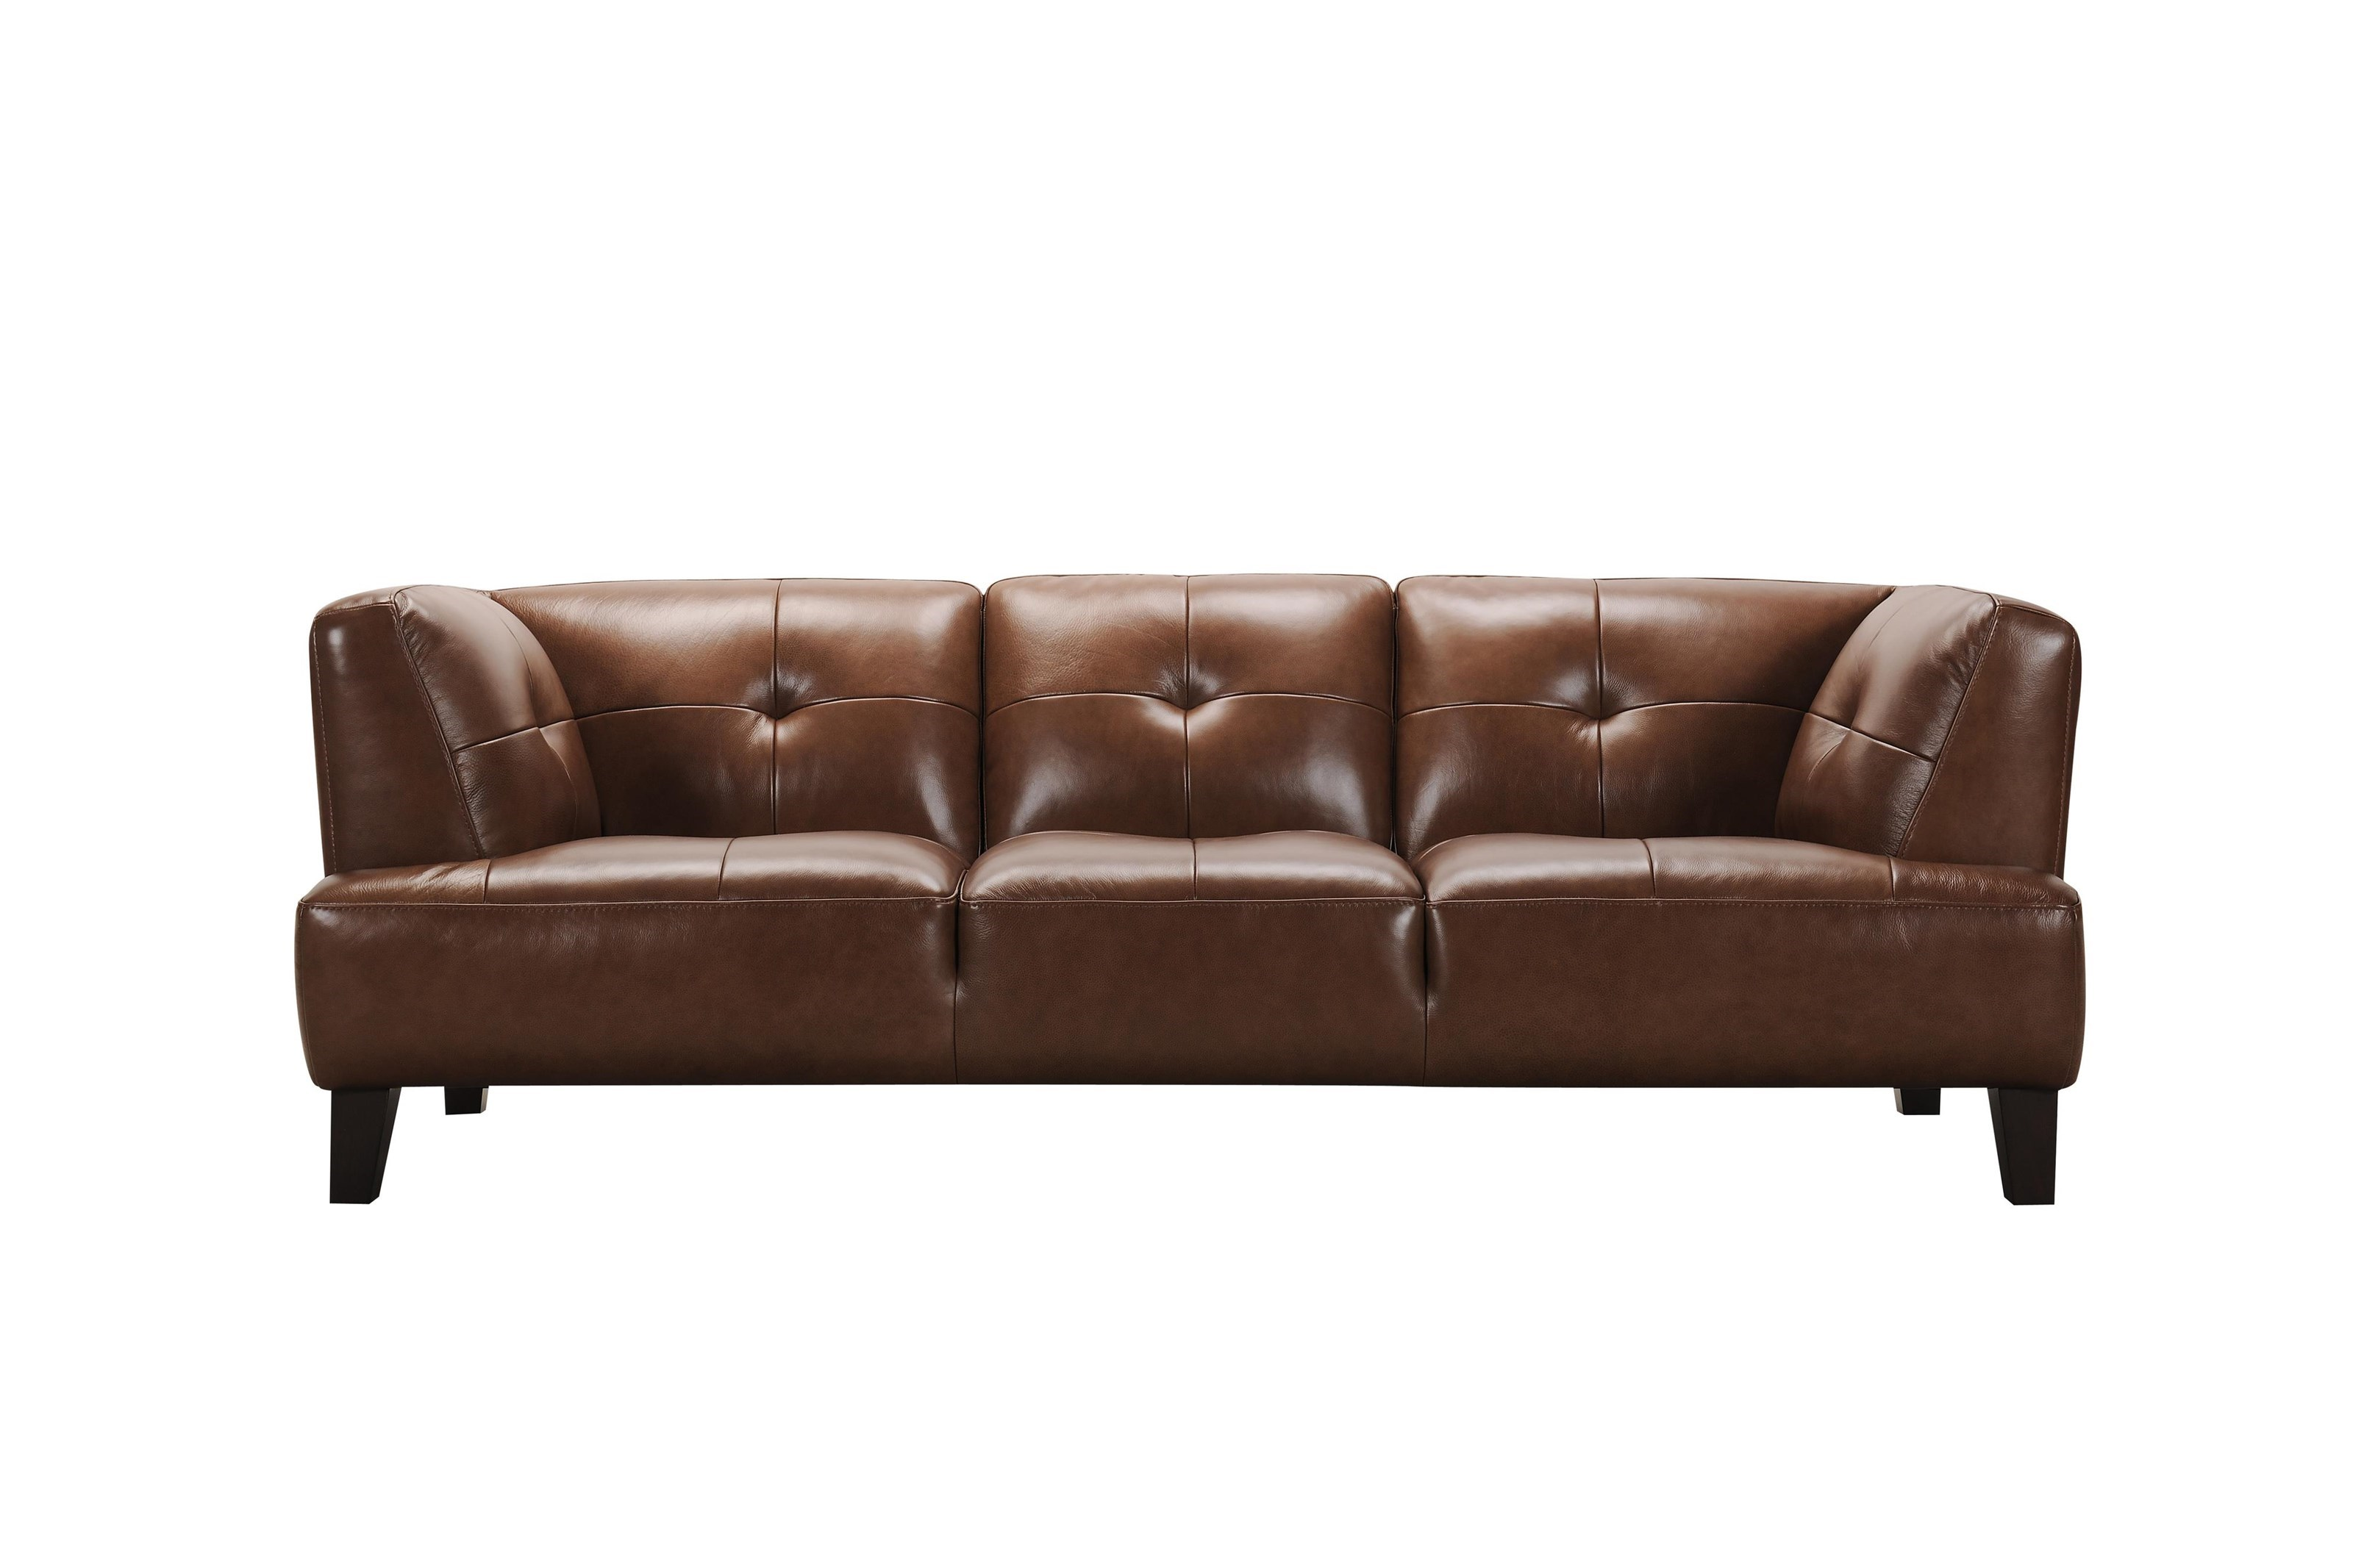 pratts leather sofas sofa clearance melbourne violino 3 seater | review home co